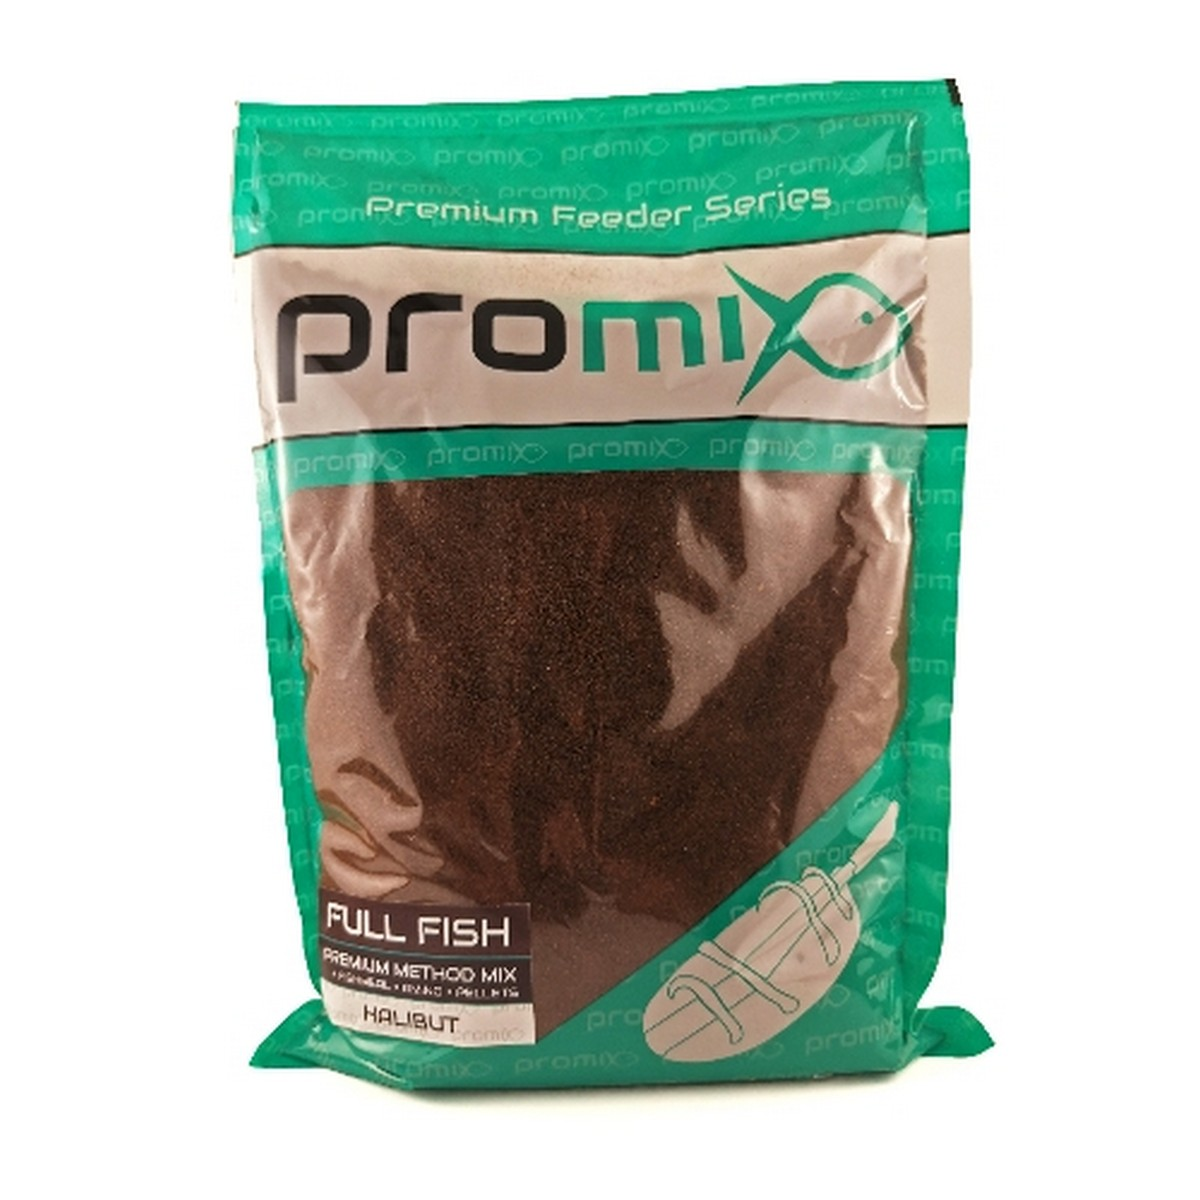 PROMIX FULL FISH METHOD MIX HALIBUT